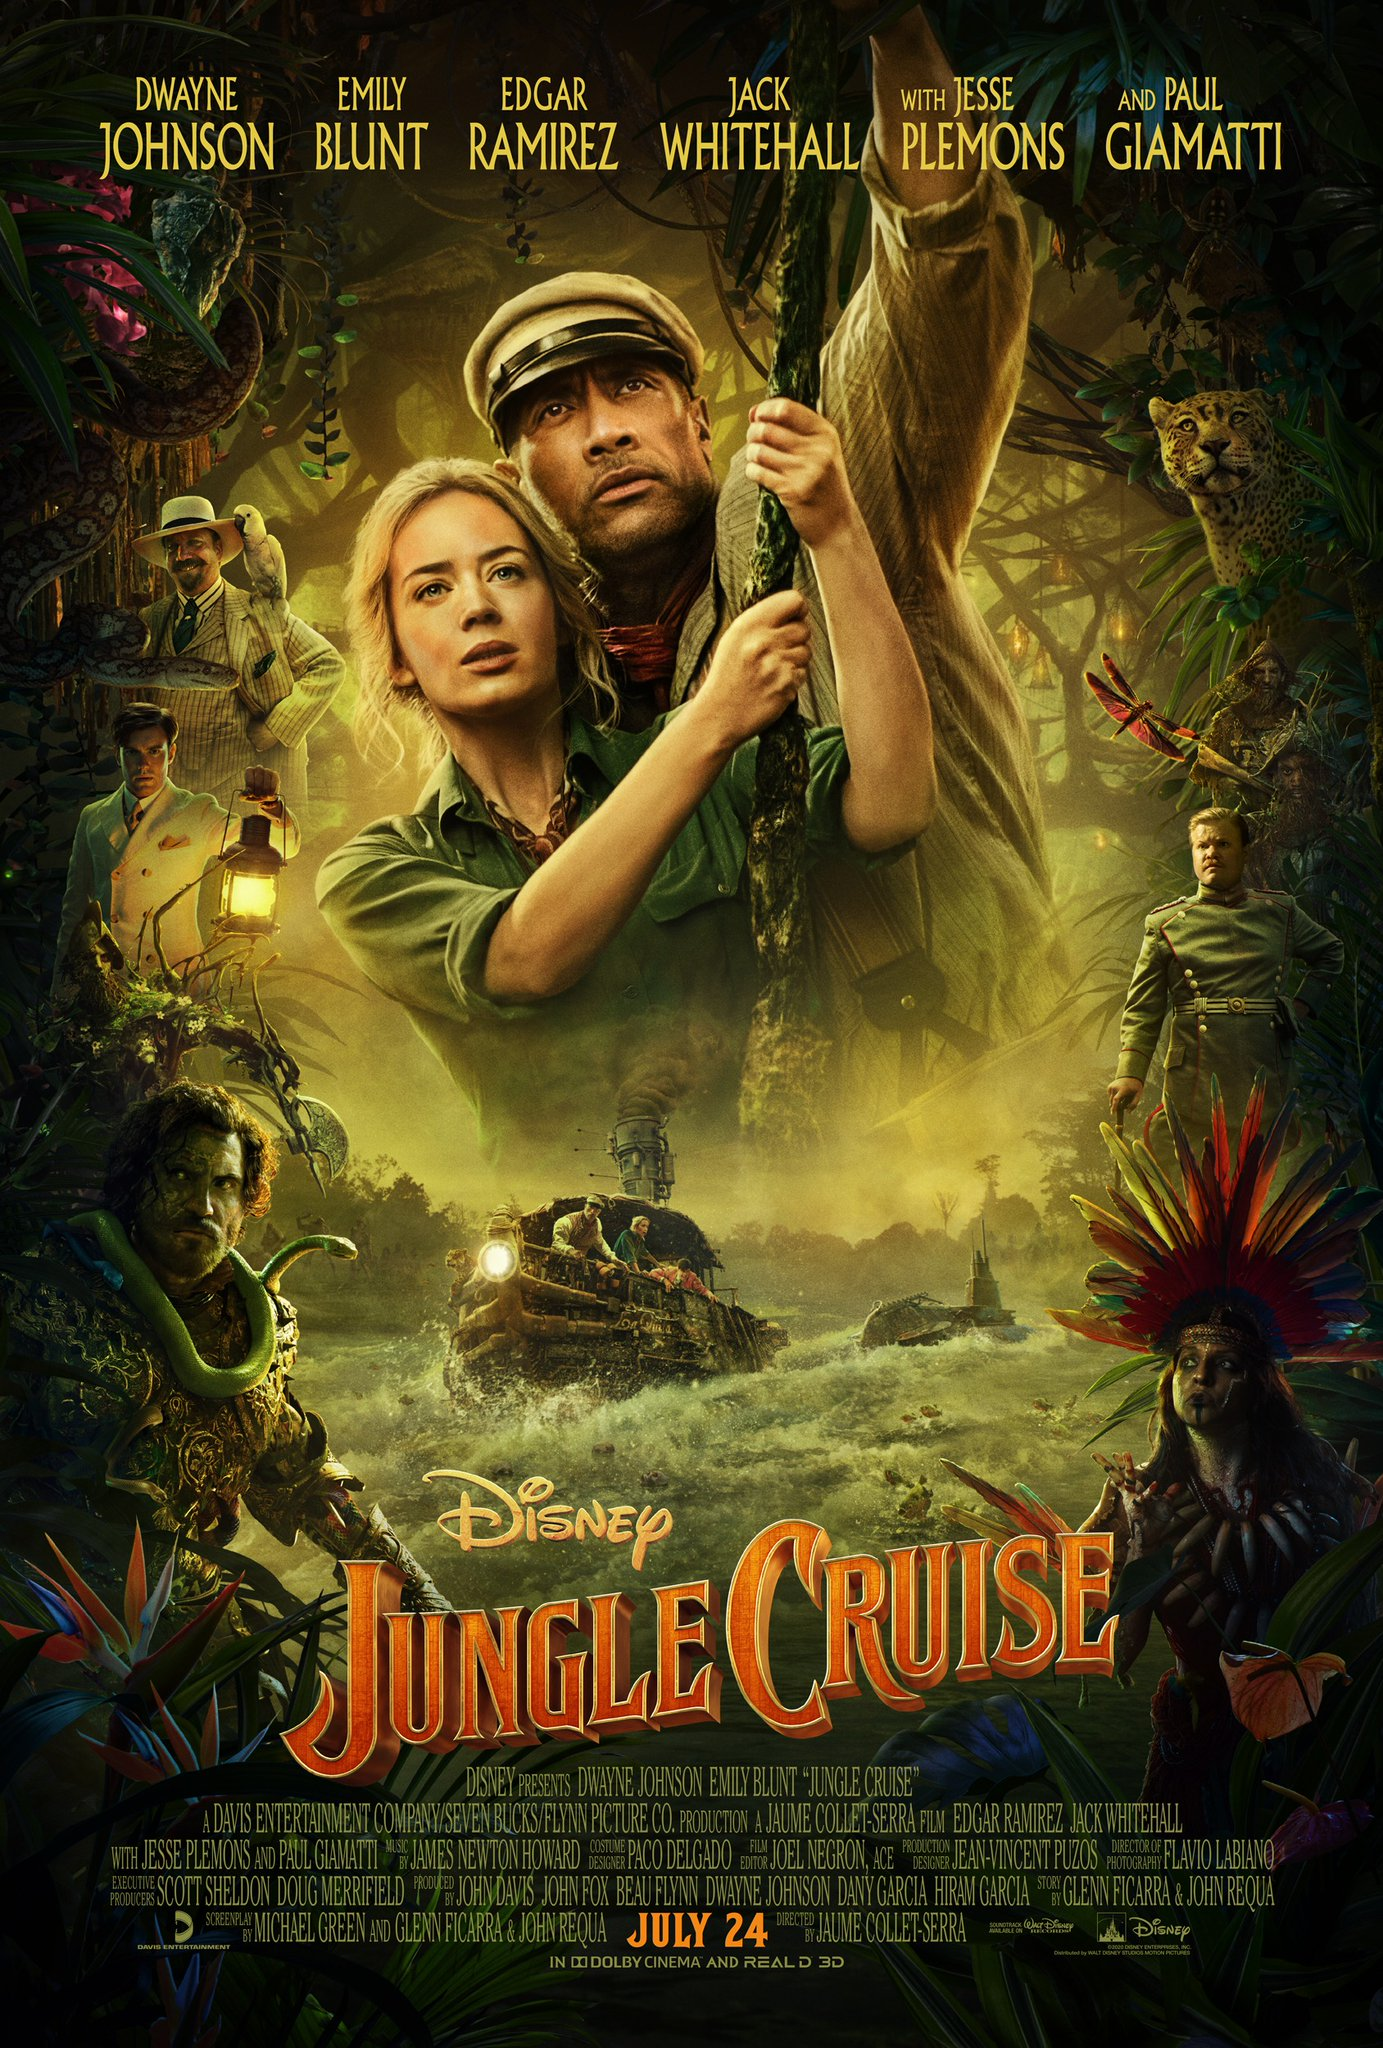 Dwayne Johnson and Emily Blunt Jungle Cruise poster